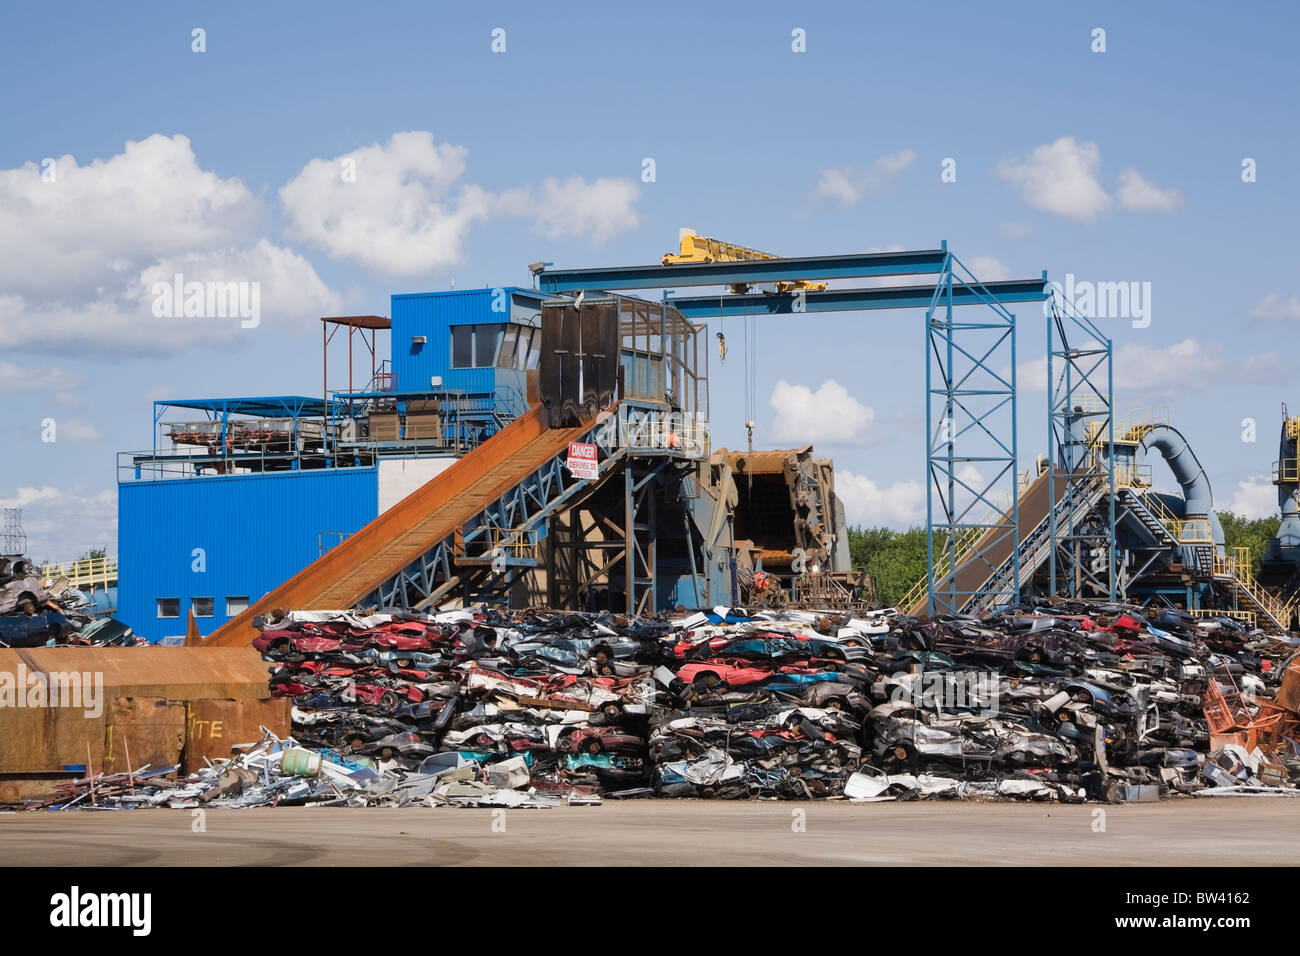 Crushed automobiles and shredder at a scrap metal recycling junkyard, Quebec, Canada - Stock Image